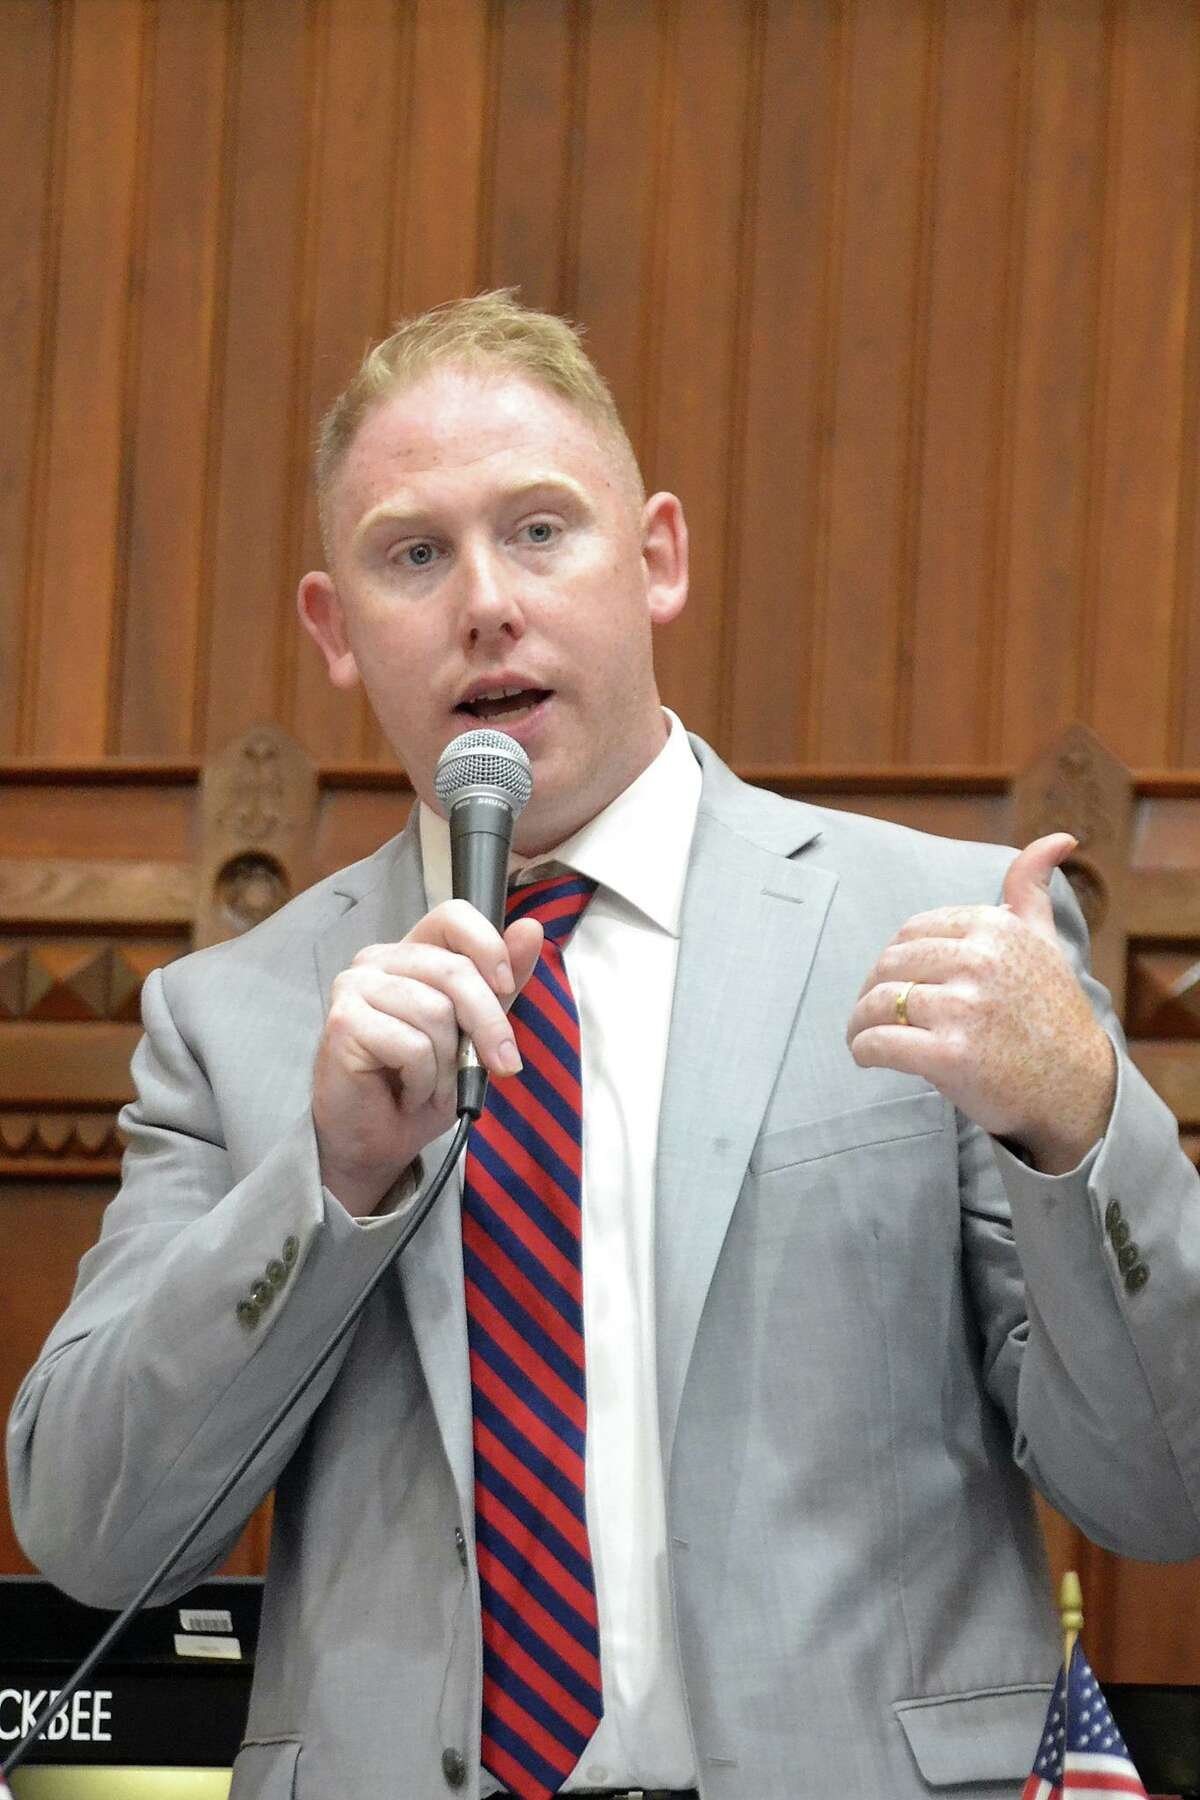 Republican Stephen Harding is running for re-election to represent the 107th House district, which includes Brookfield, Bethel and Danbury.